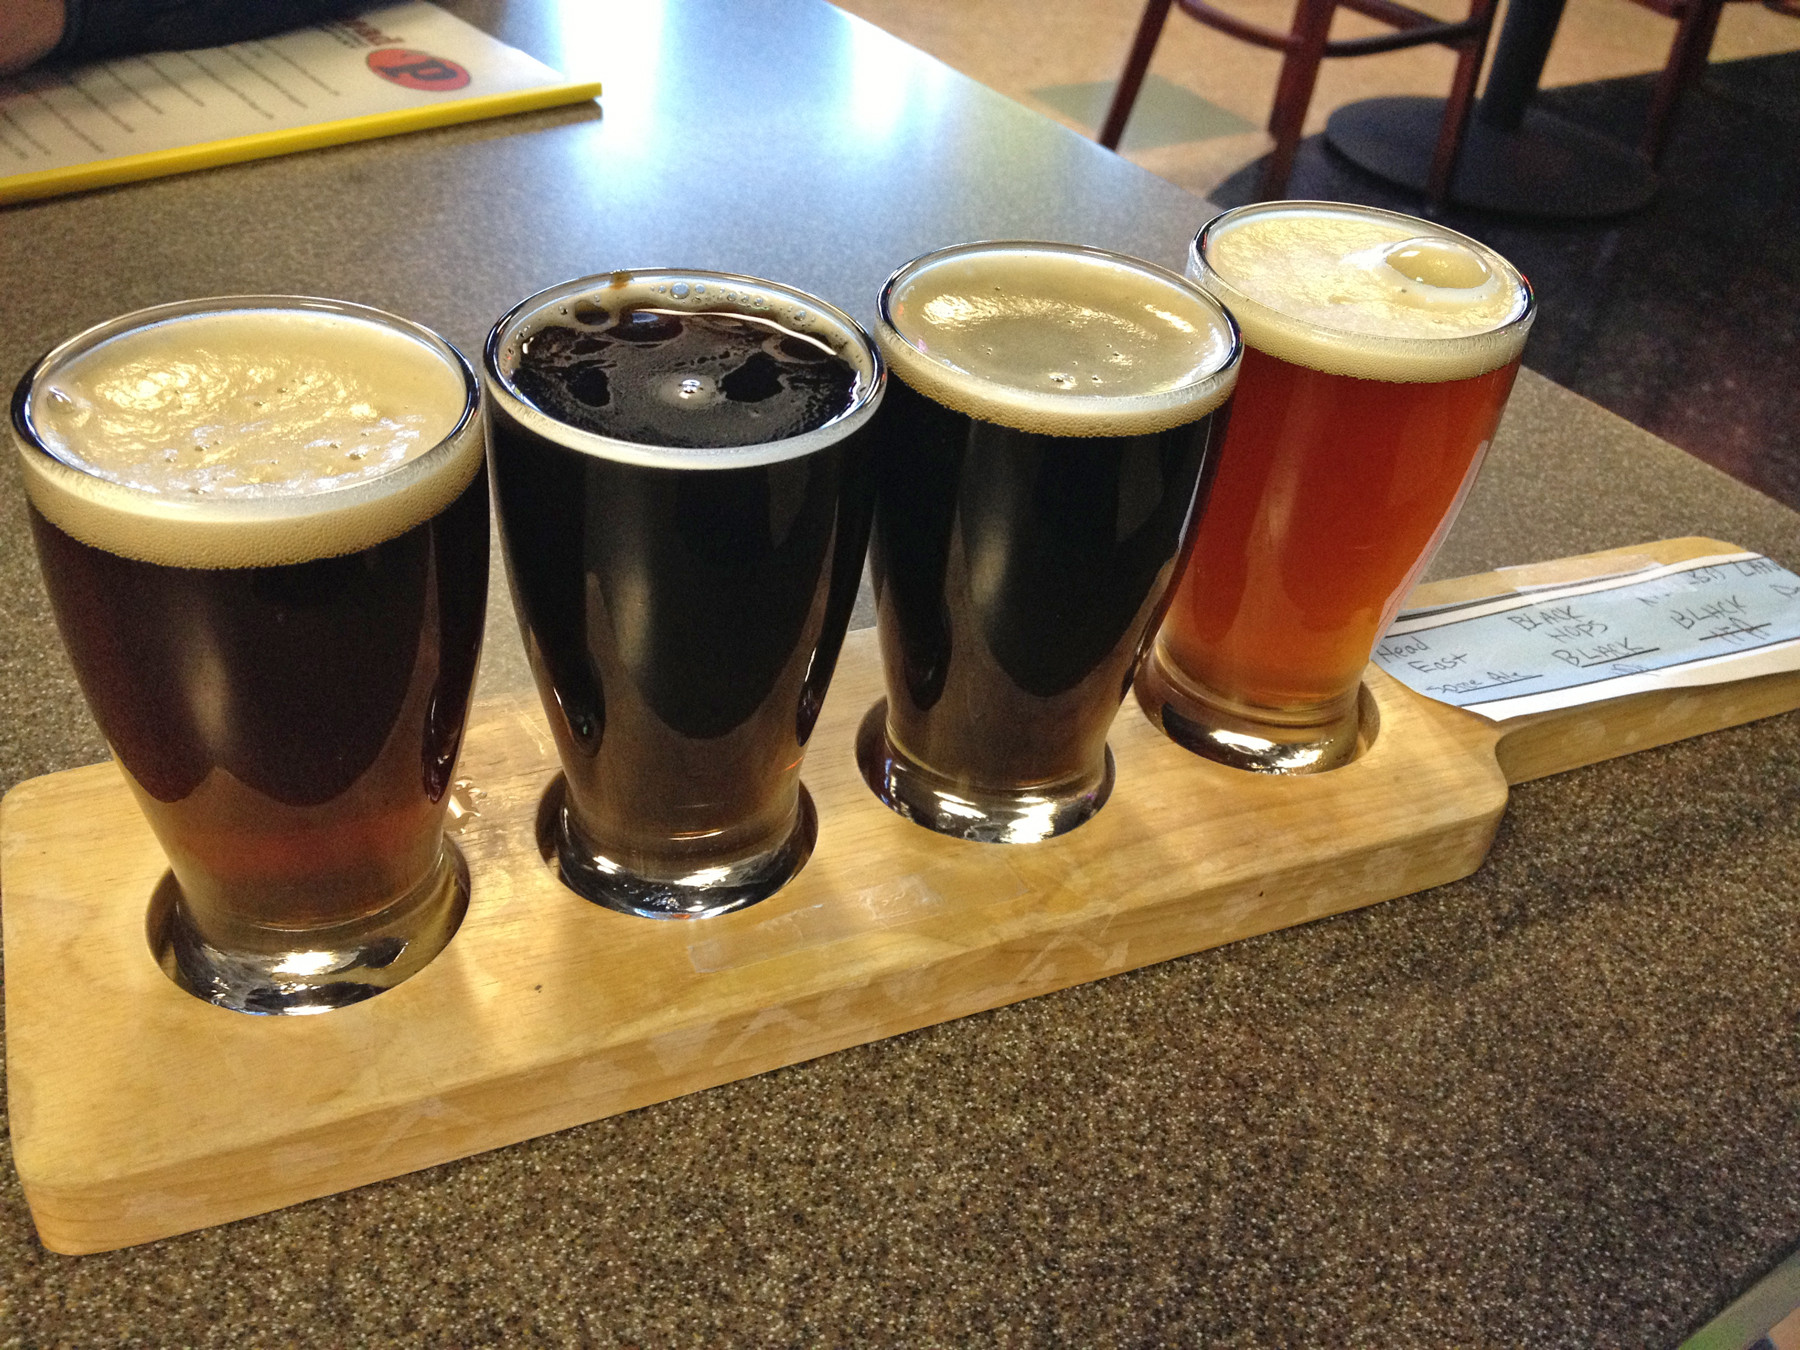 Can't decide on one beer, or want to try them all? Opt for a flight and select four 4-ounce pours.